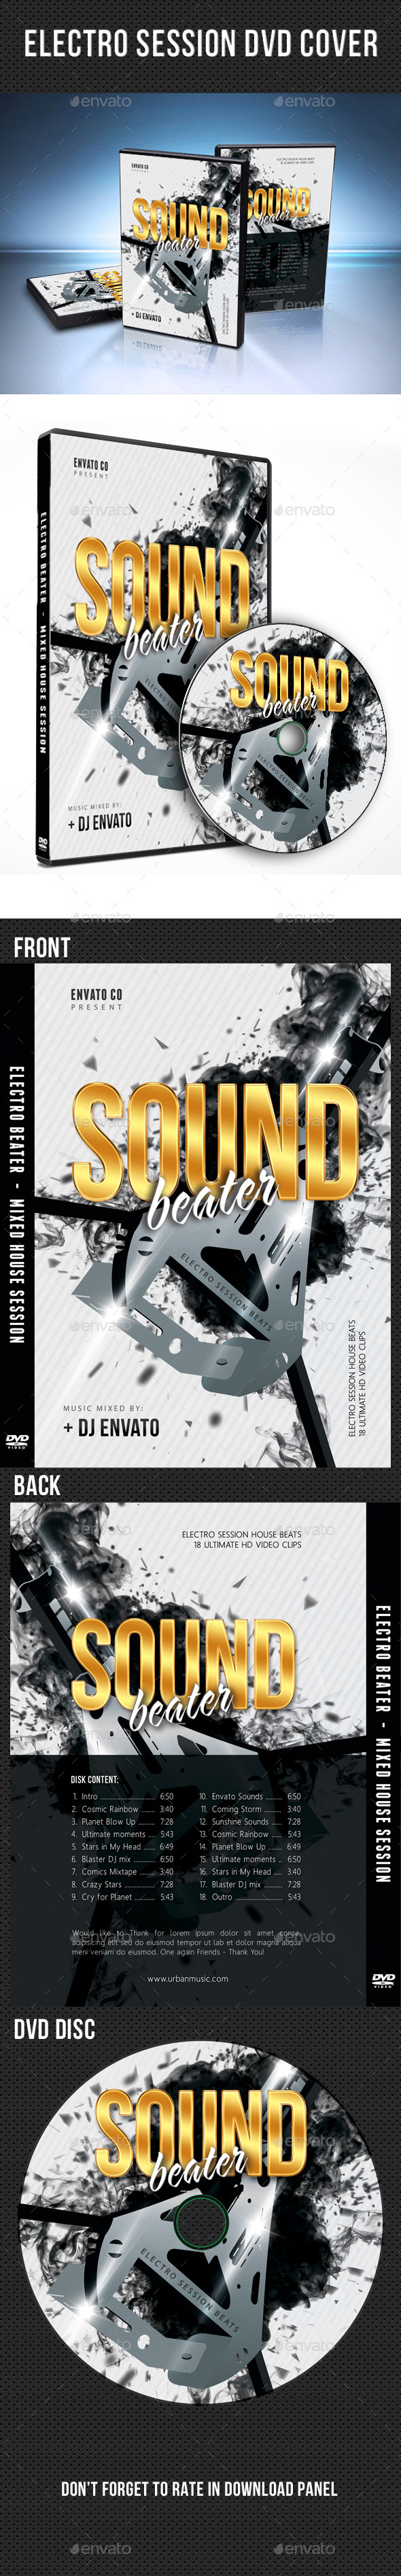 Electro Session DVD Cover Template V03